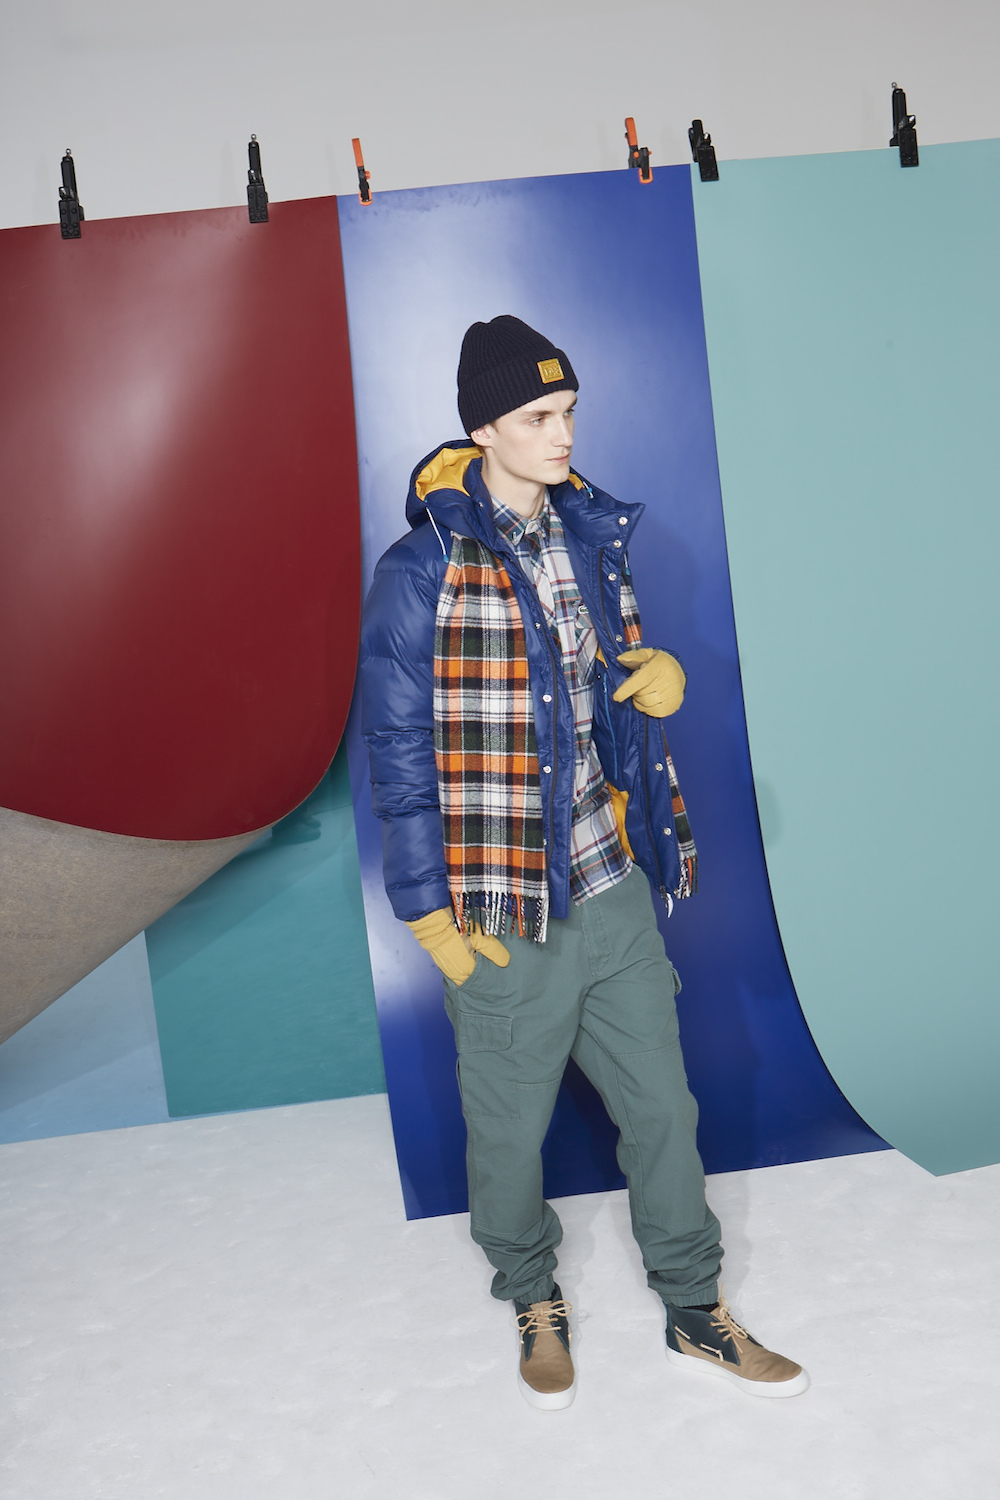 014_LACOSTE_LIVE_FW14-15_Menswear_Look_Book